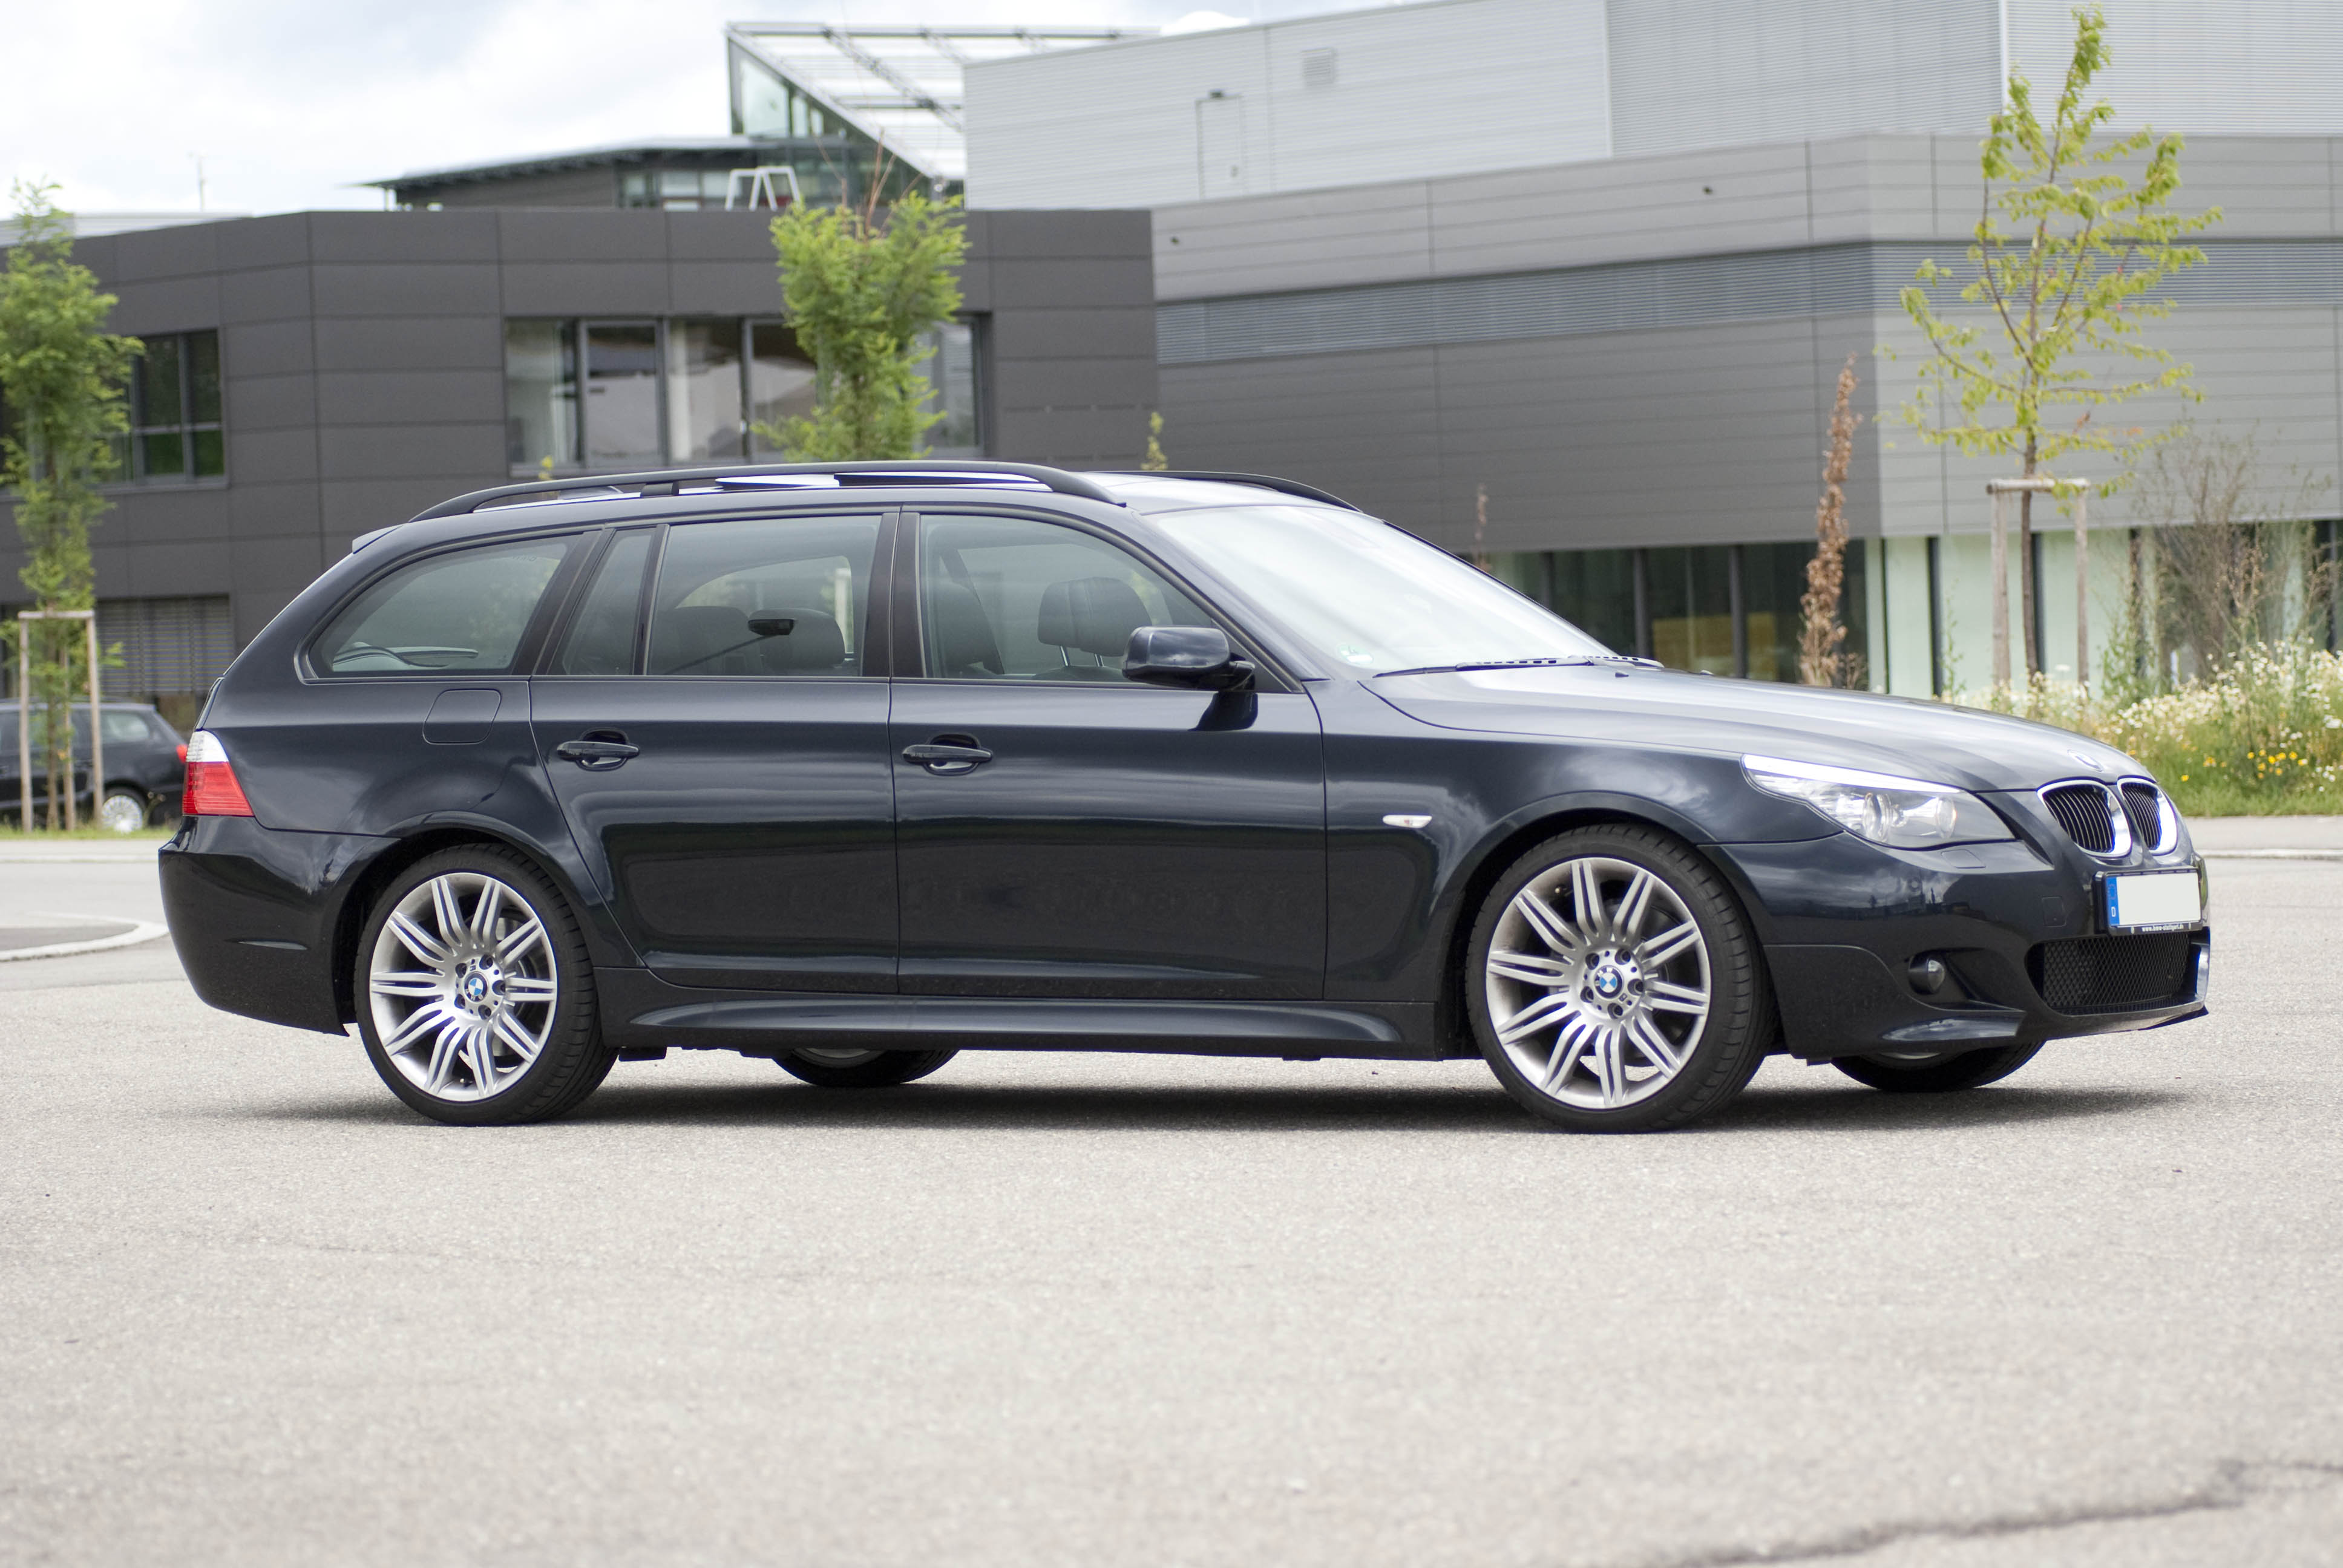 bmw 530d touring technical details history photos on better parts ltd. Black Bedroom Furniture Sets. Home Design Ideas